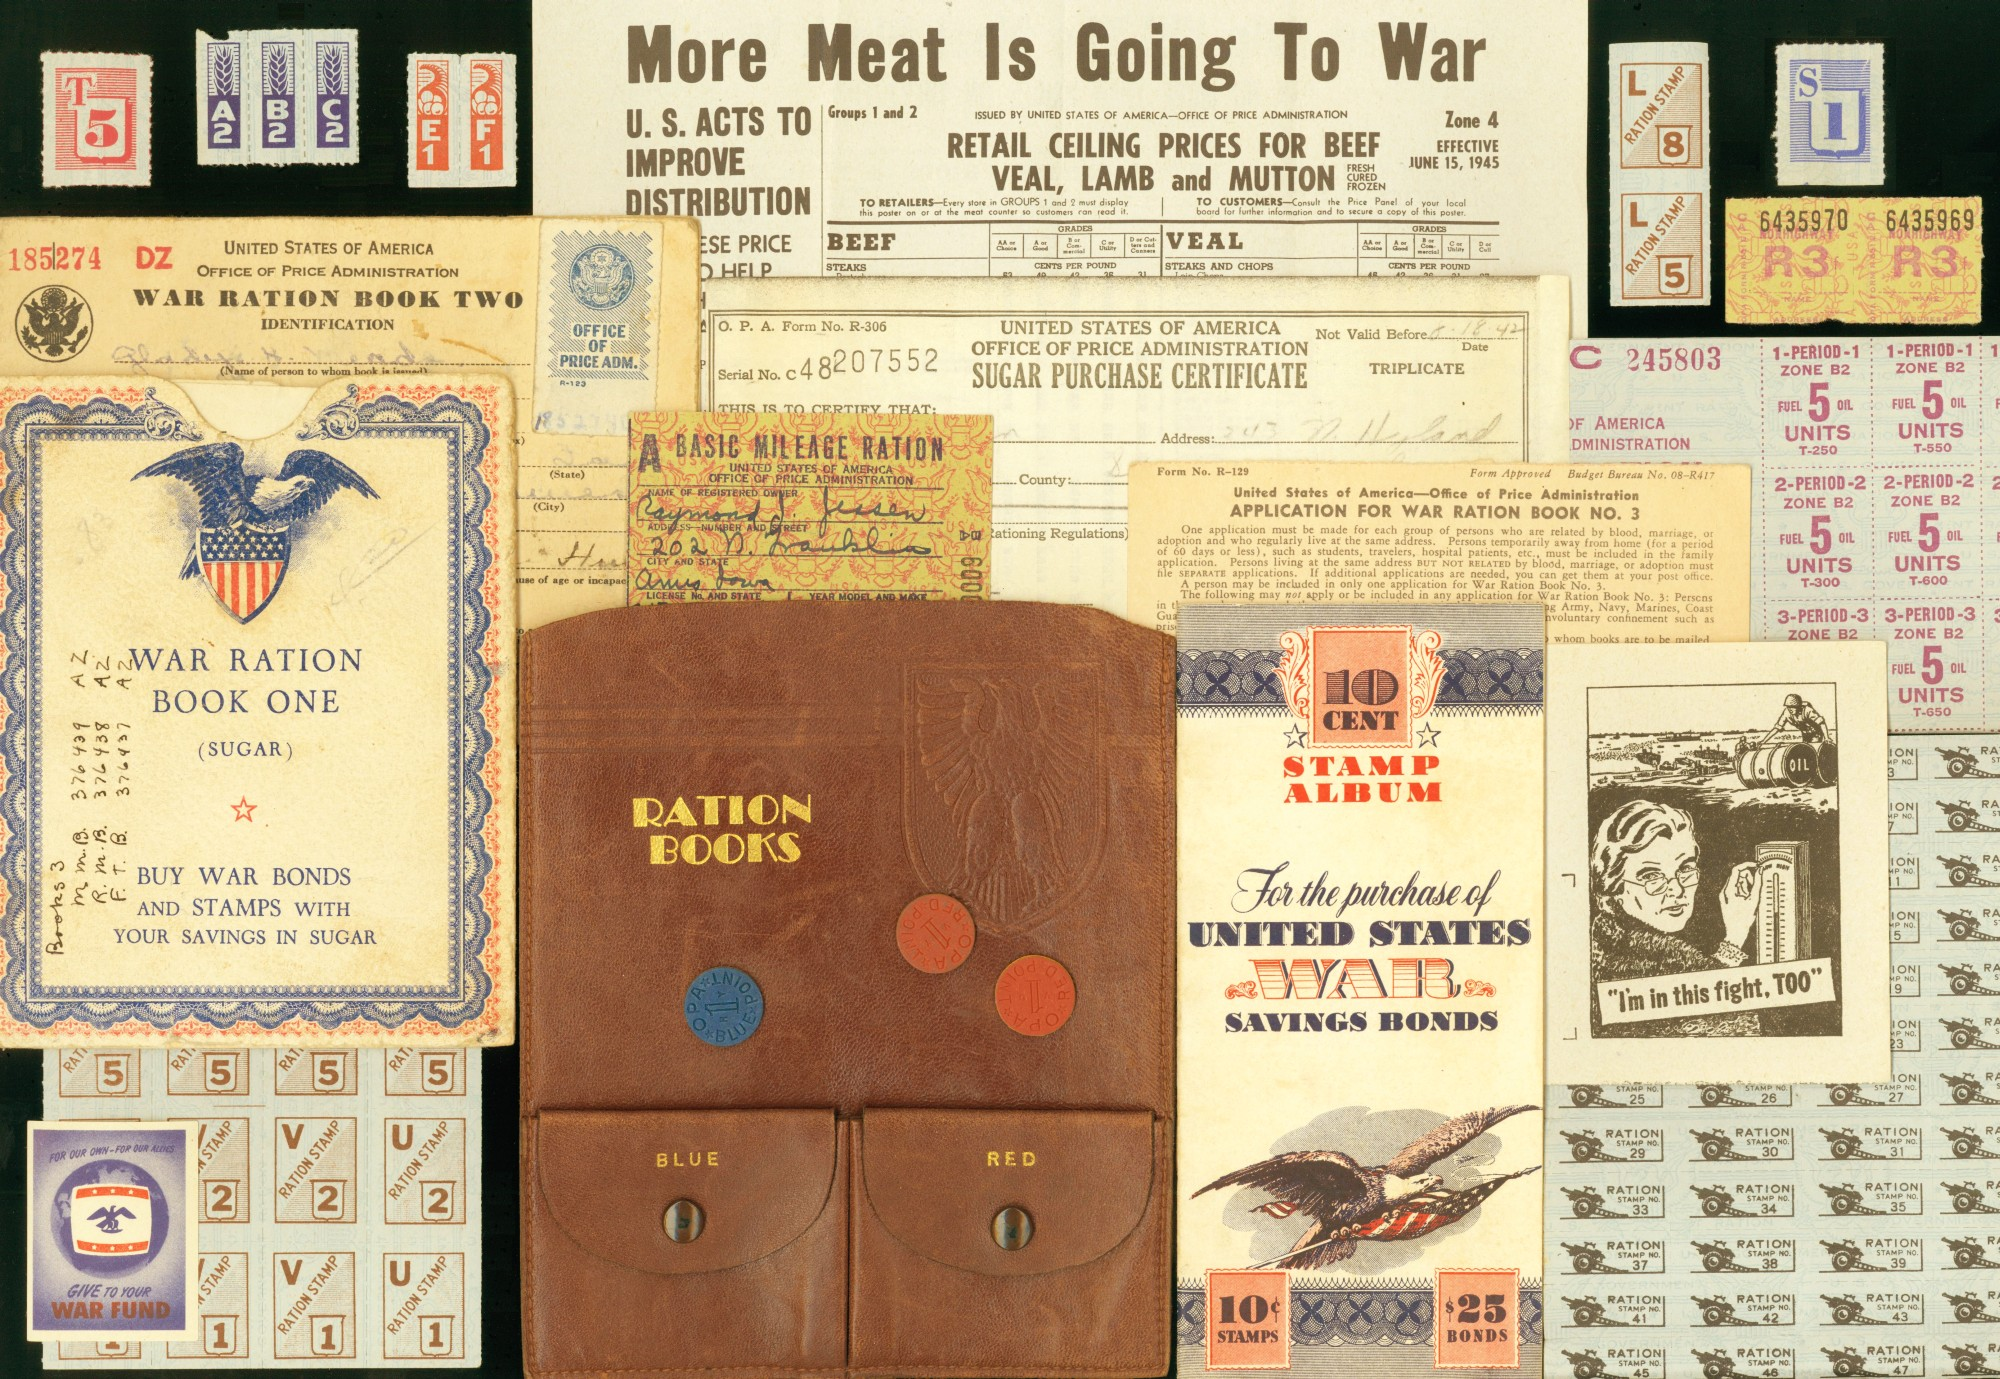 Ration Coins Introduced In 1944 Allowed Retailers To Give Change Back For Food Bought With Stamps